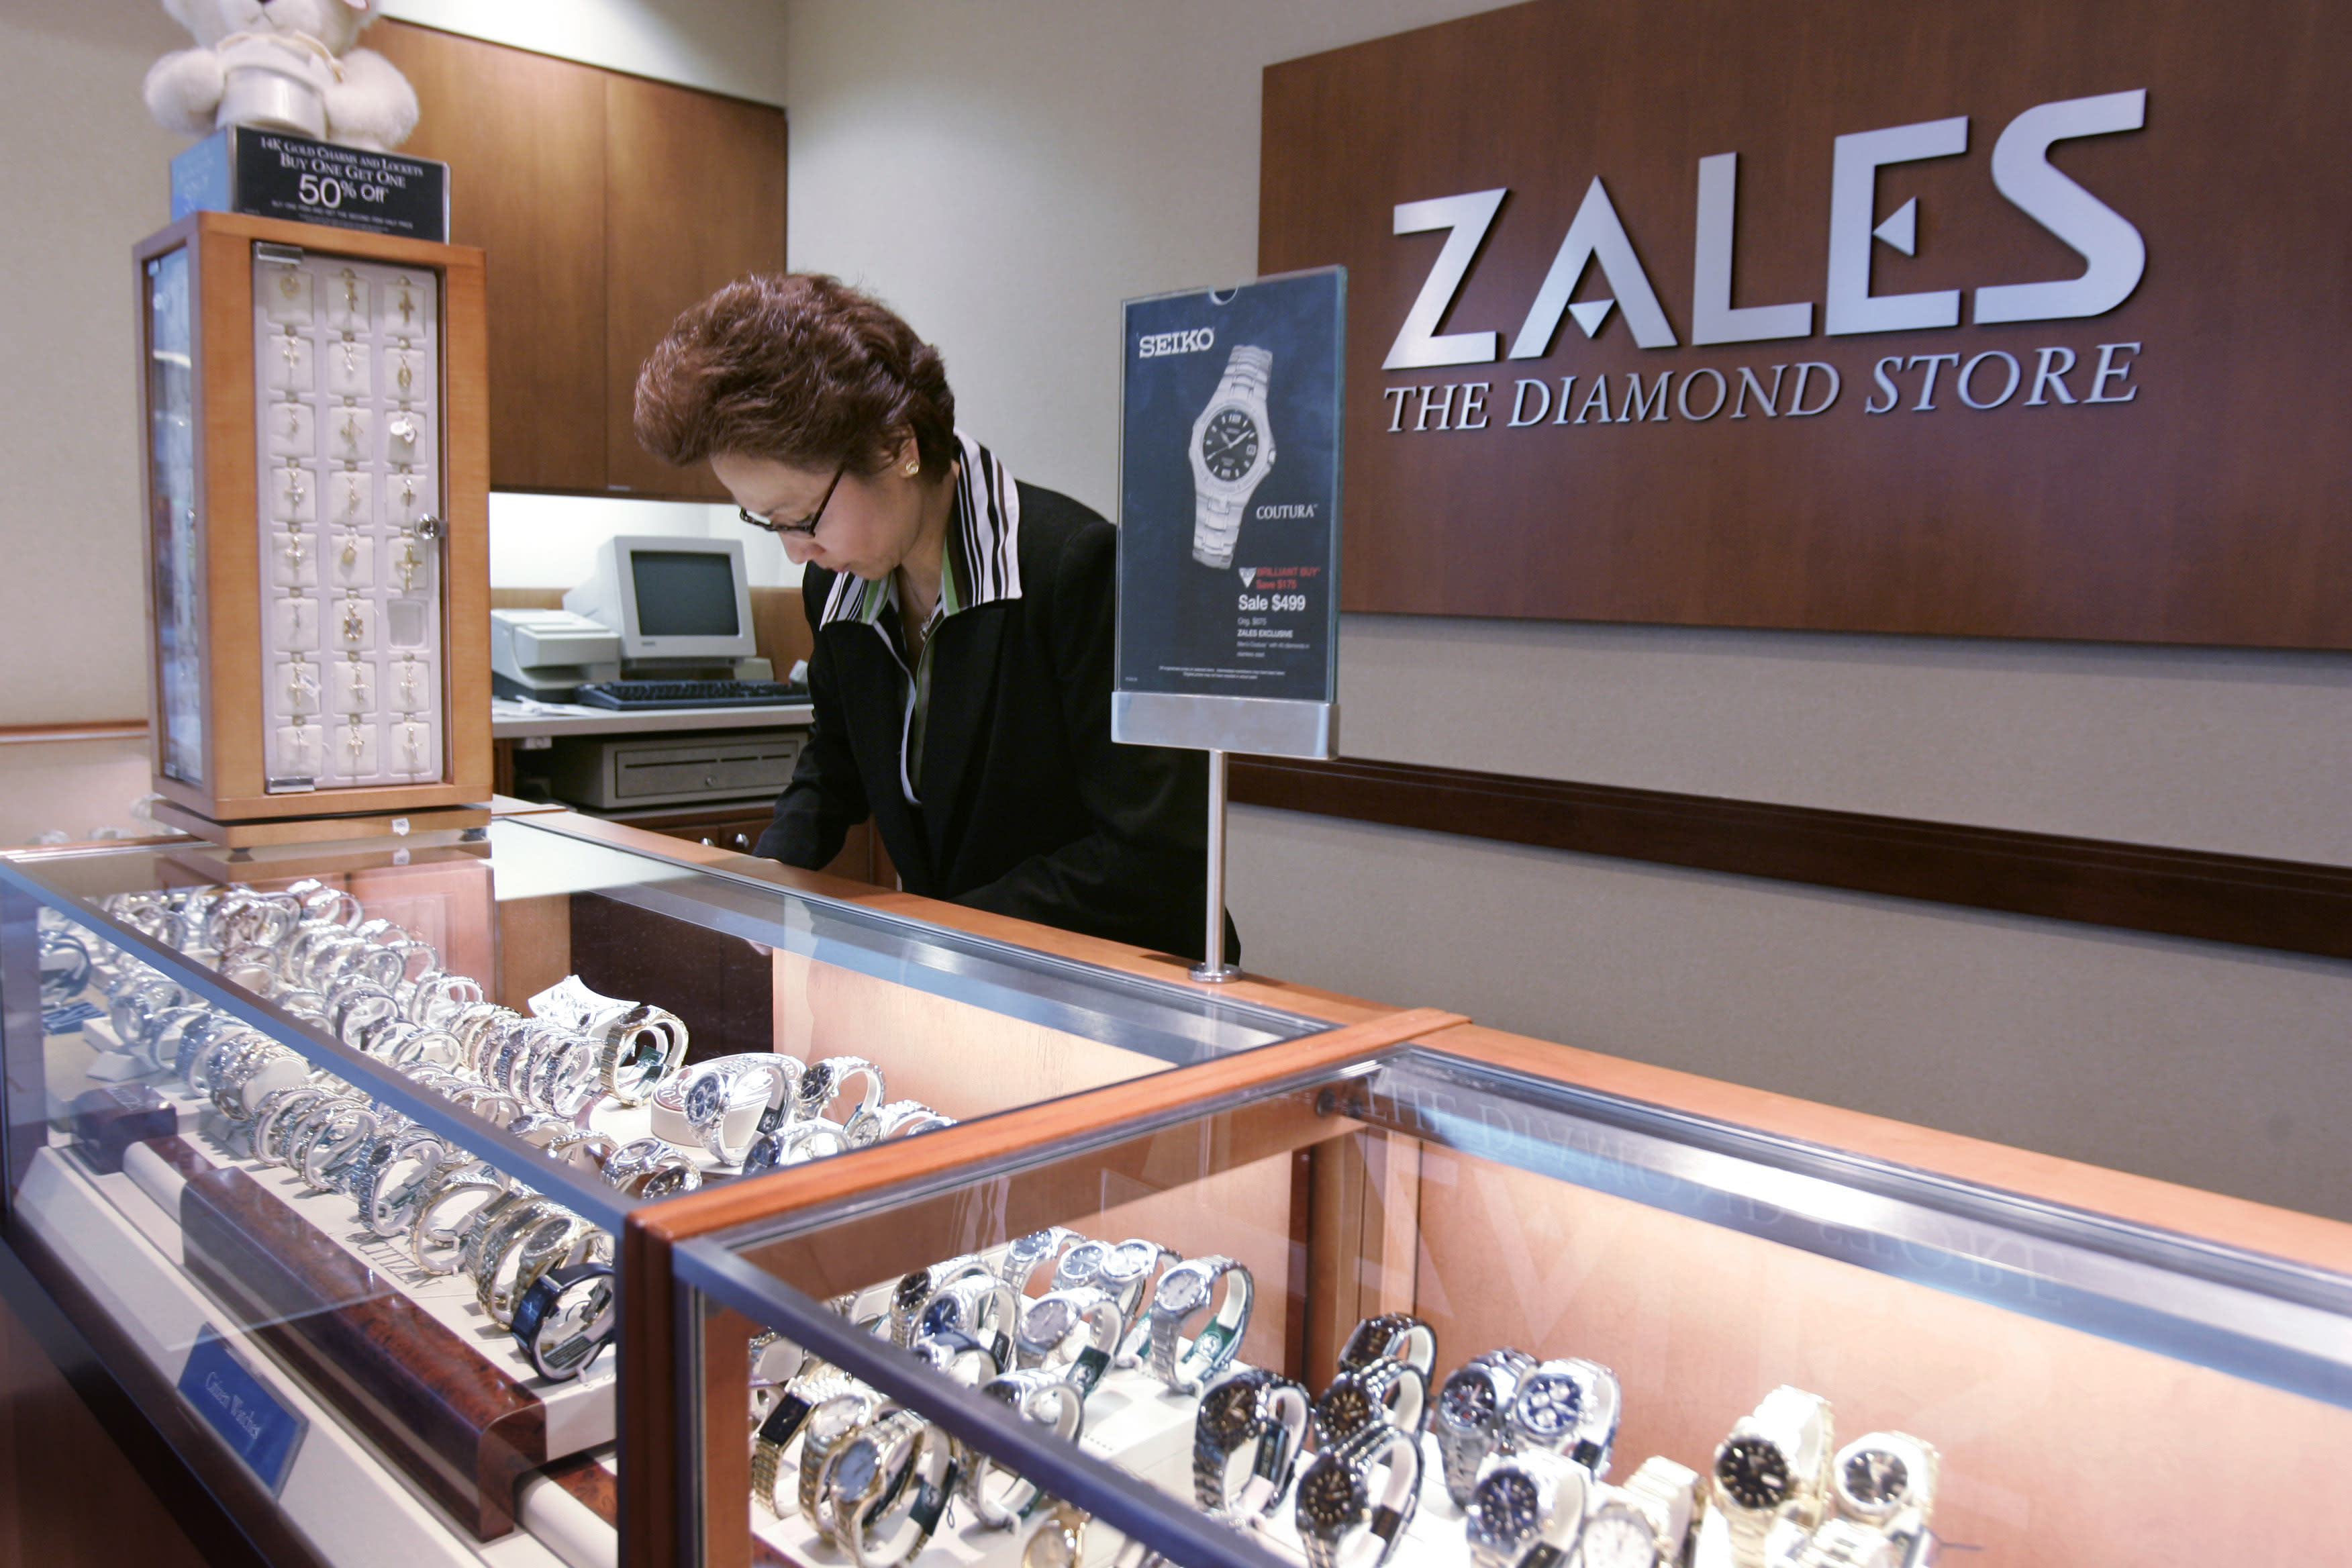 signet jewelers buying zale for about m